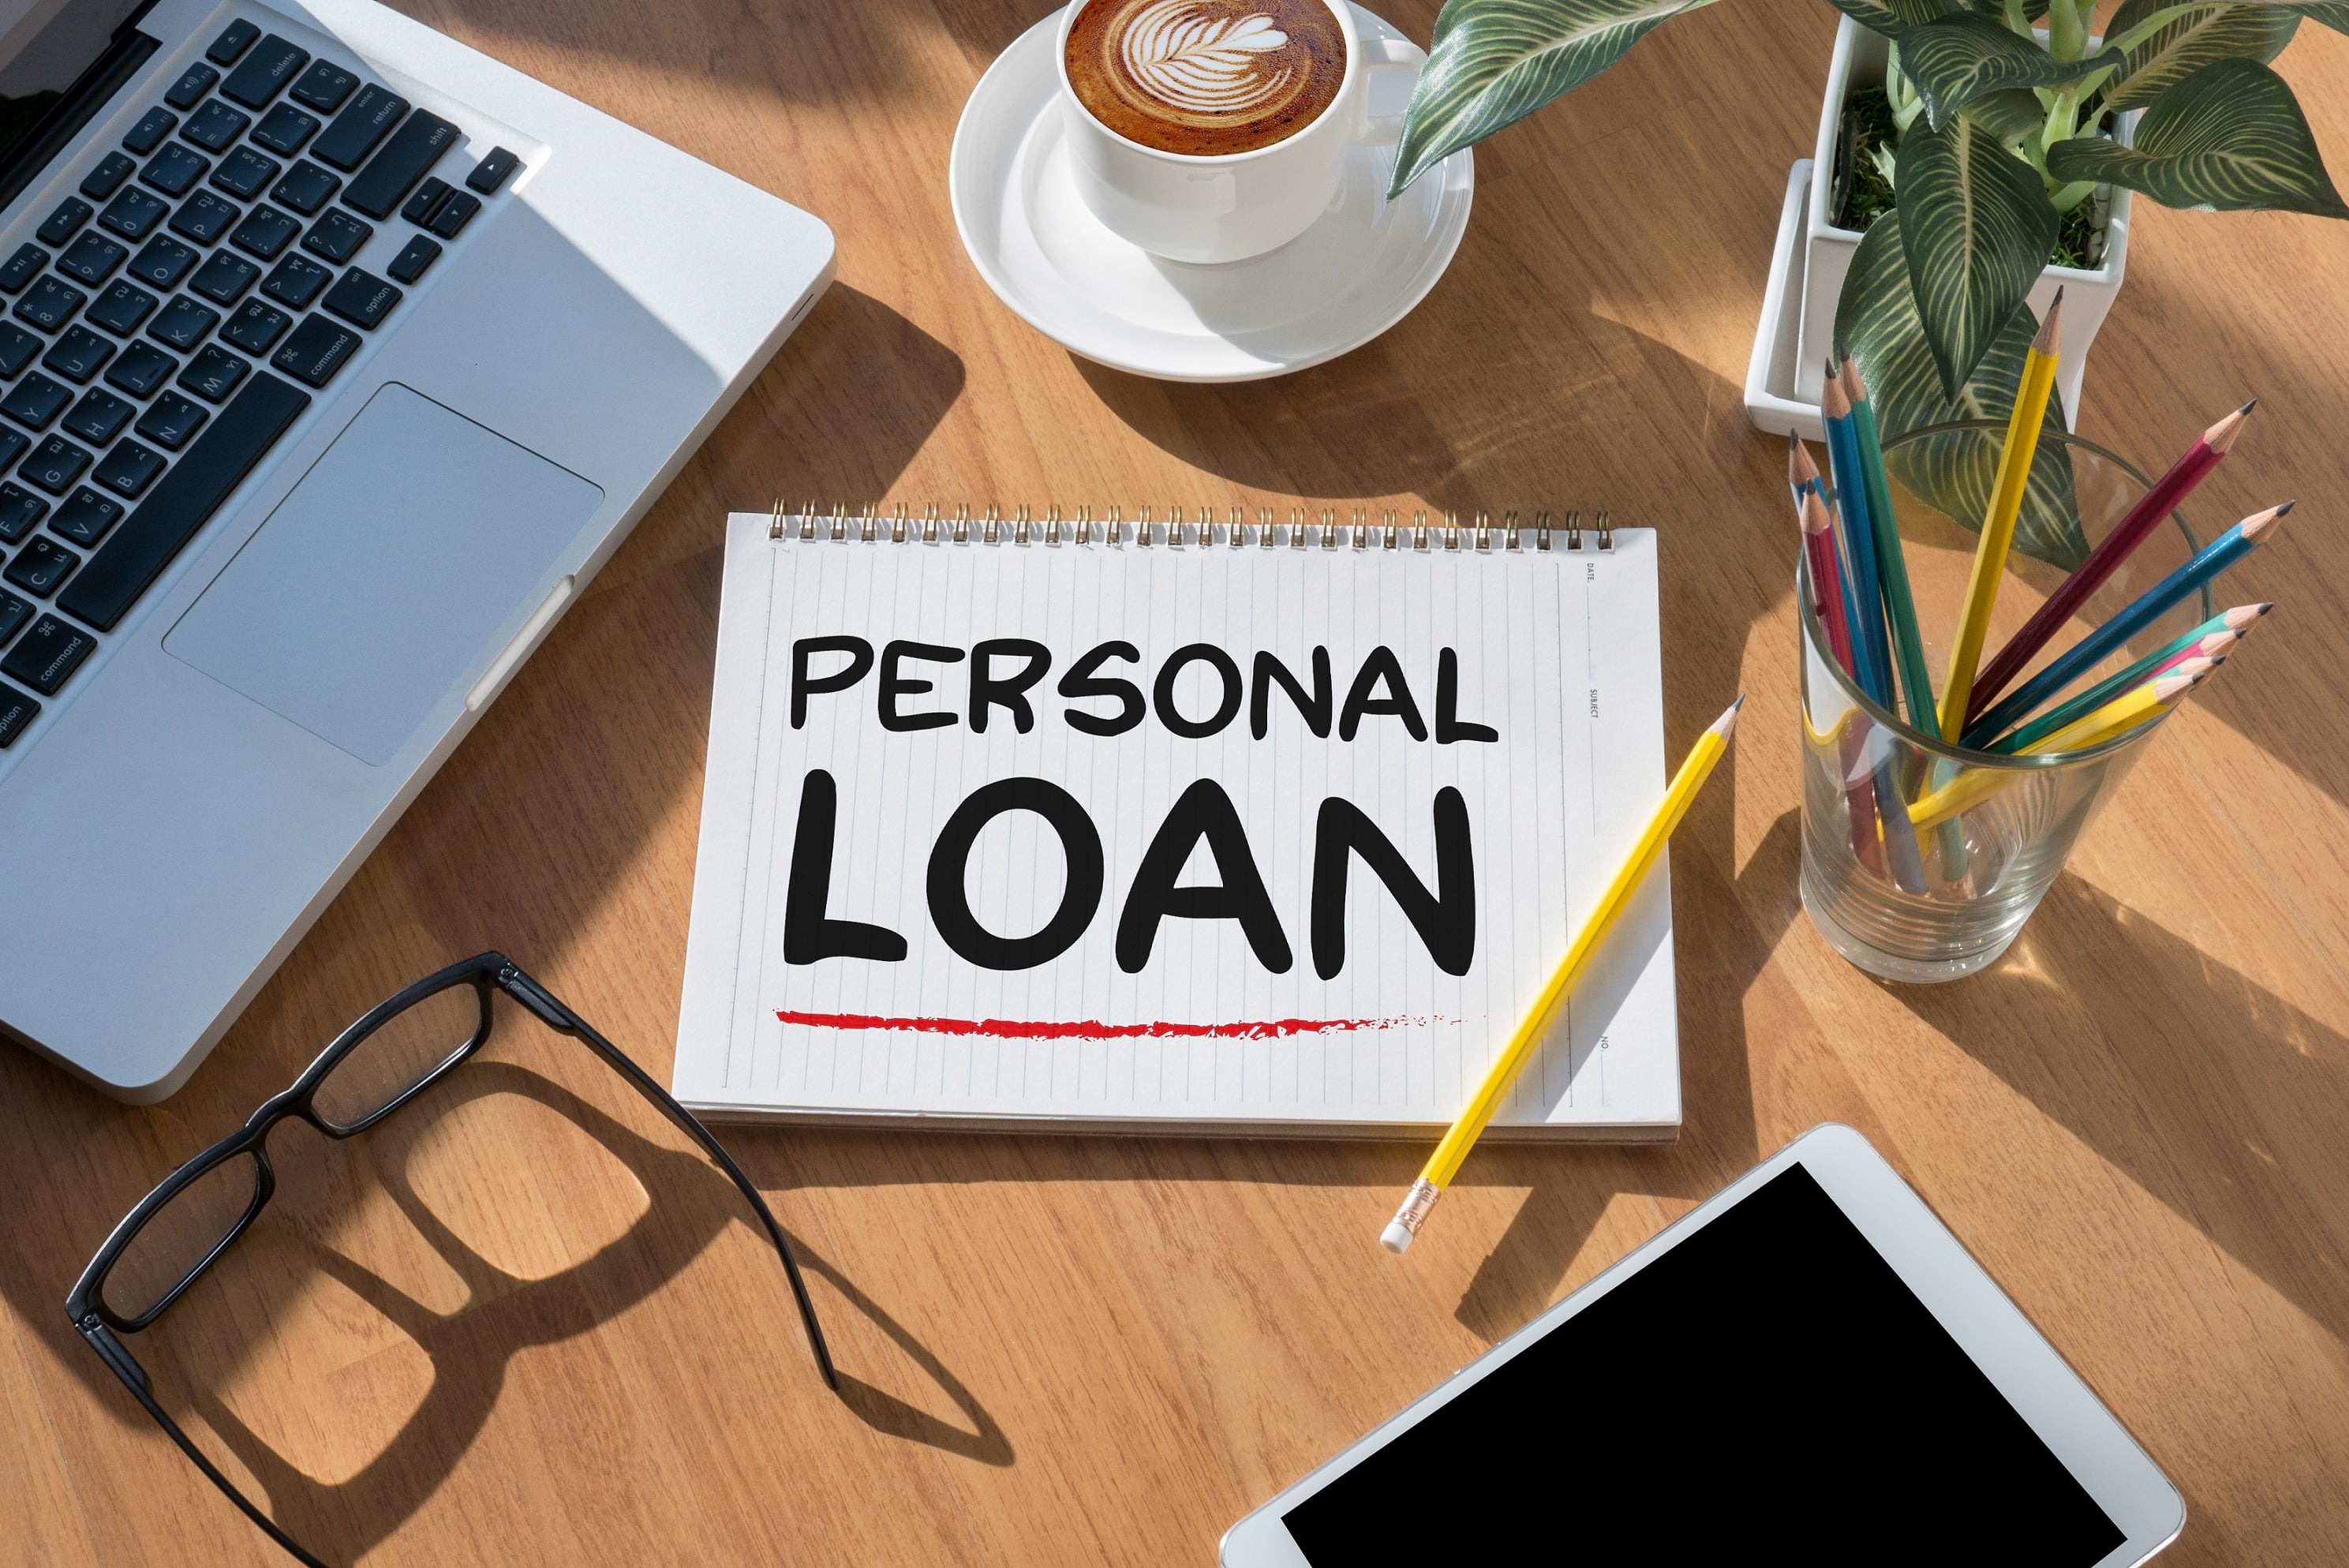 Personal Loan For Mortgage